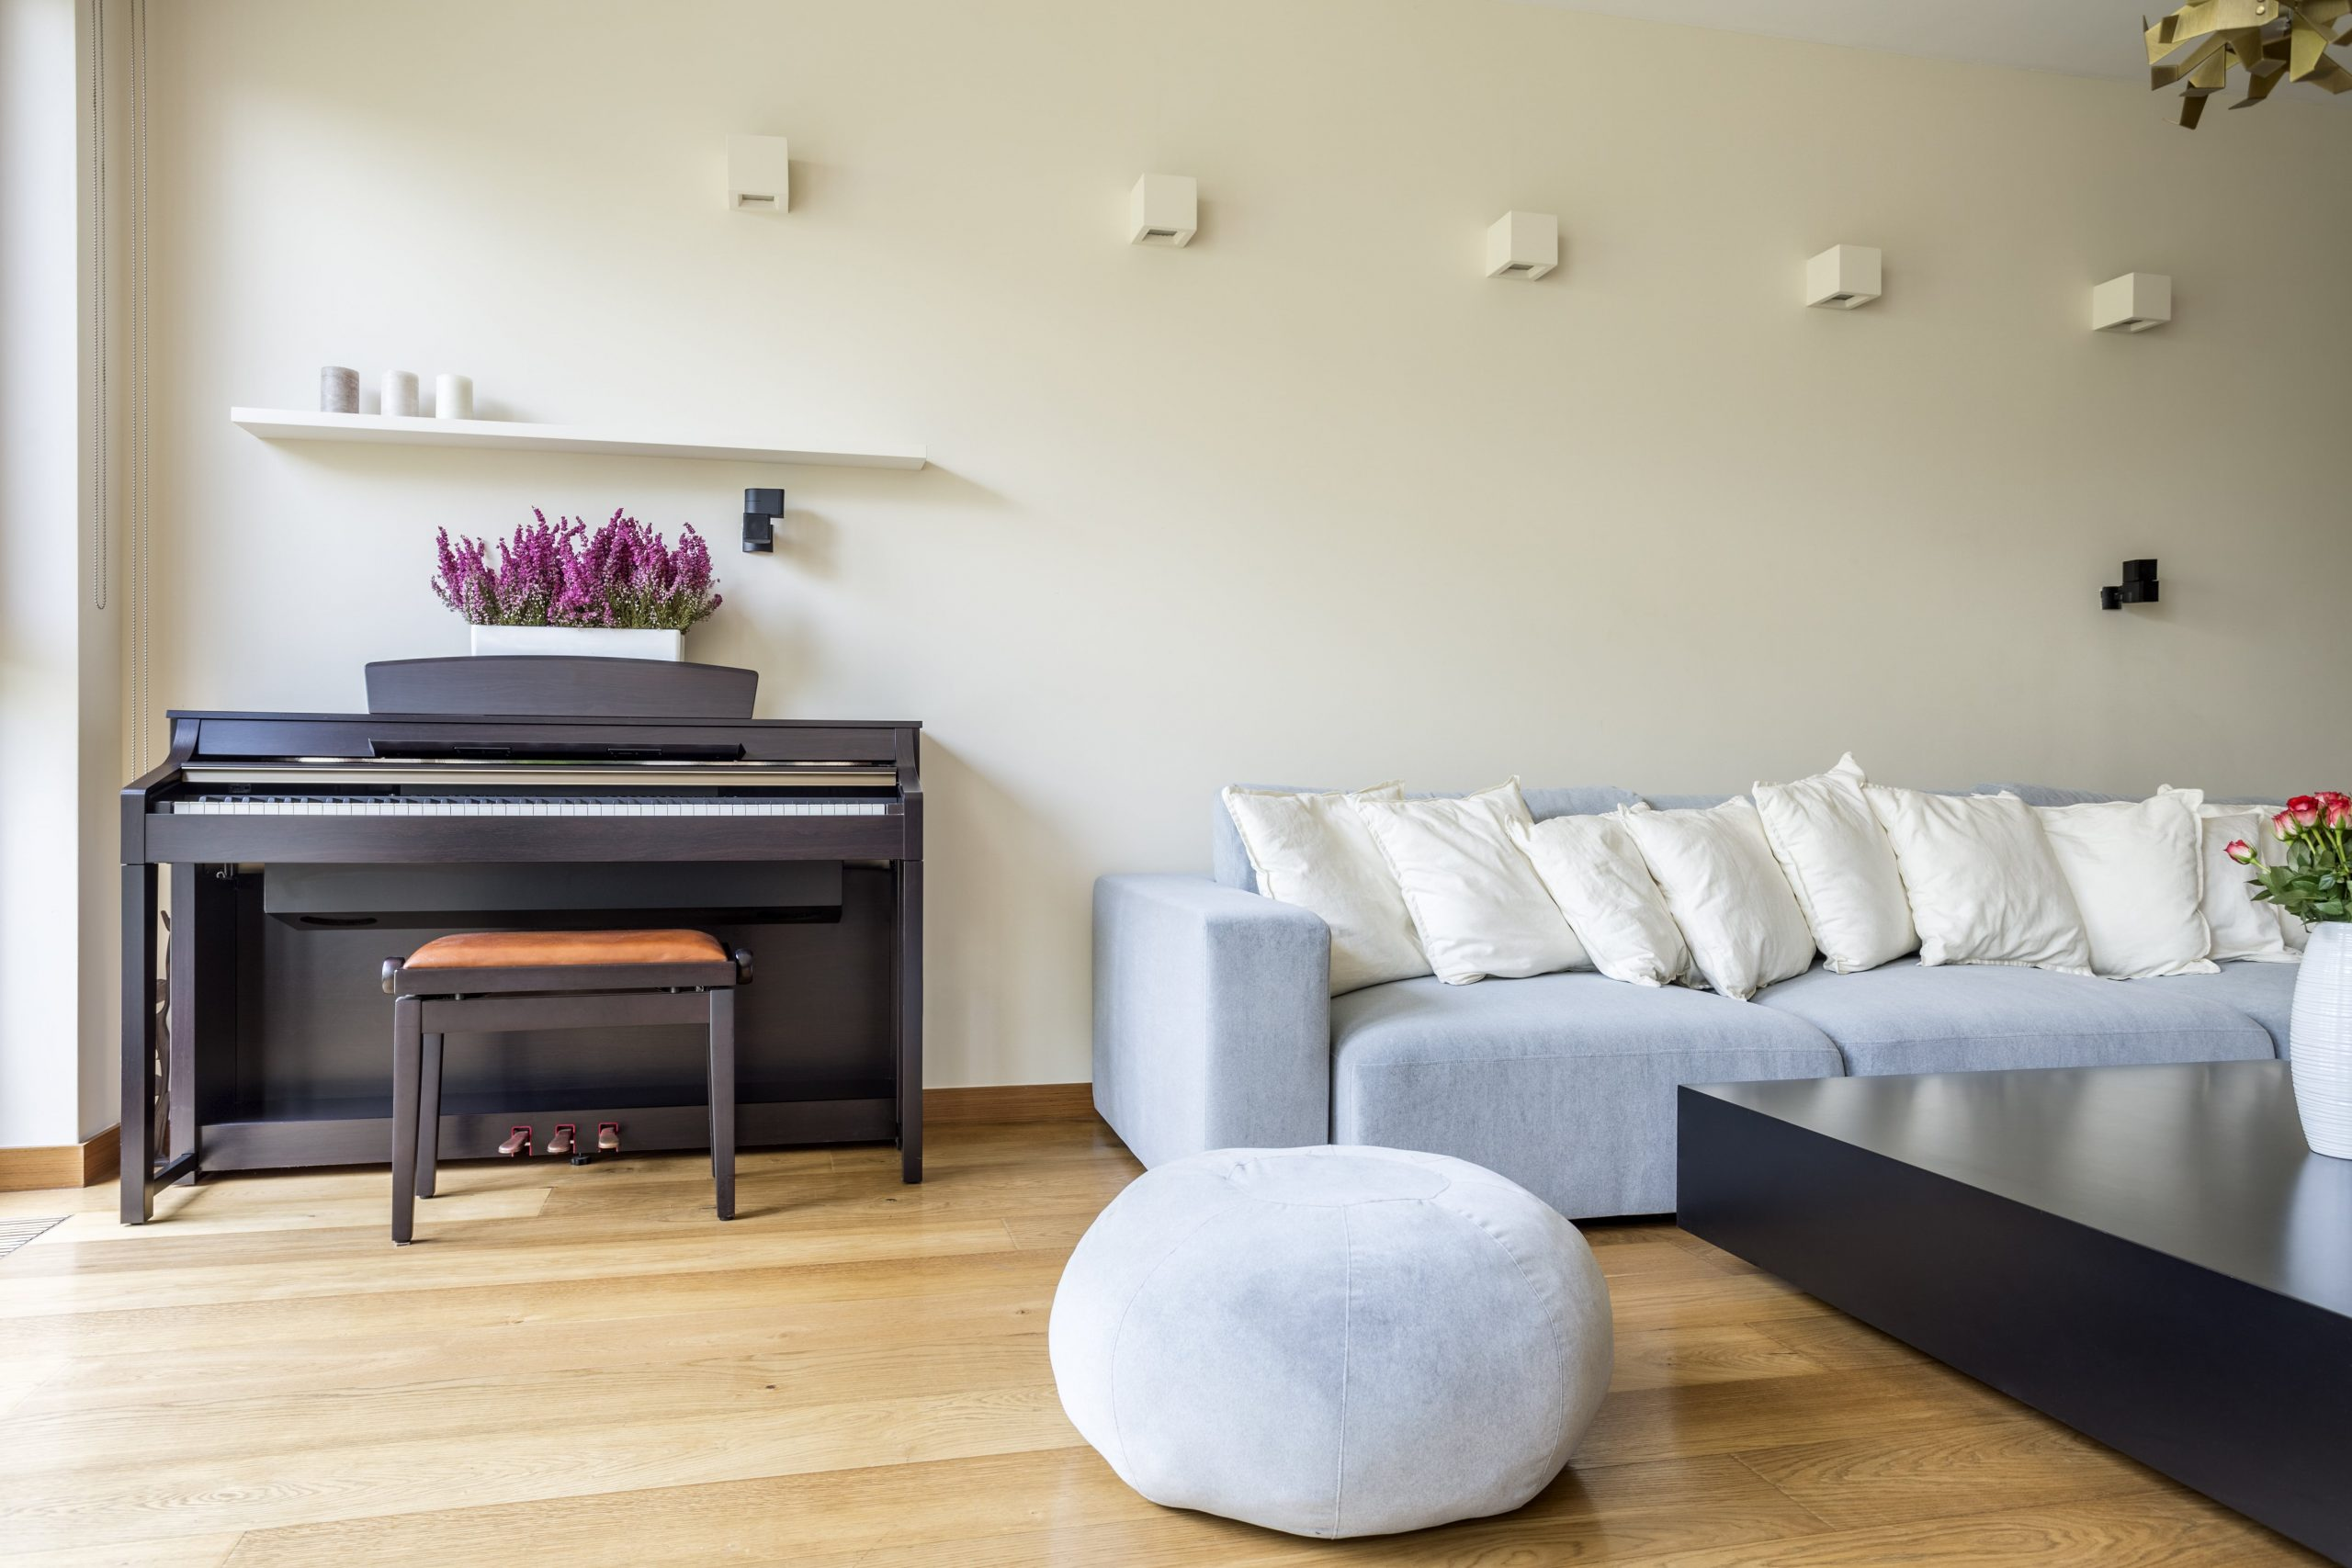 Fitting a Piano Into a Living Room